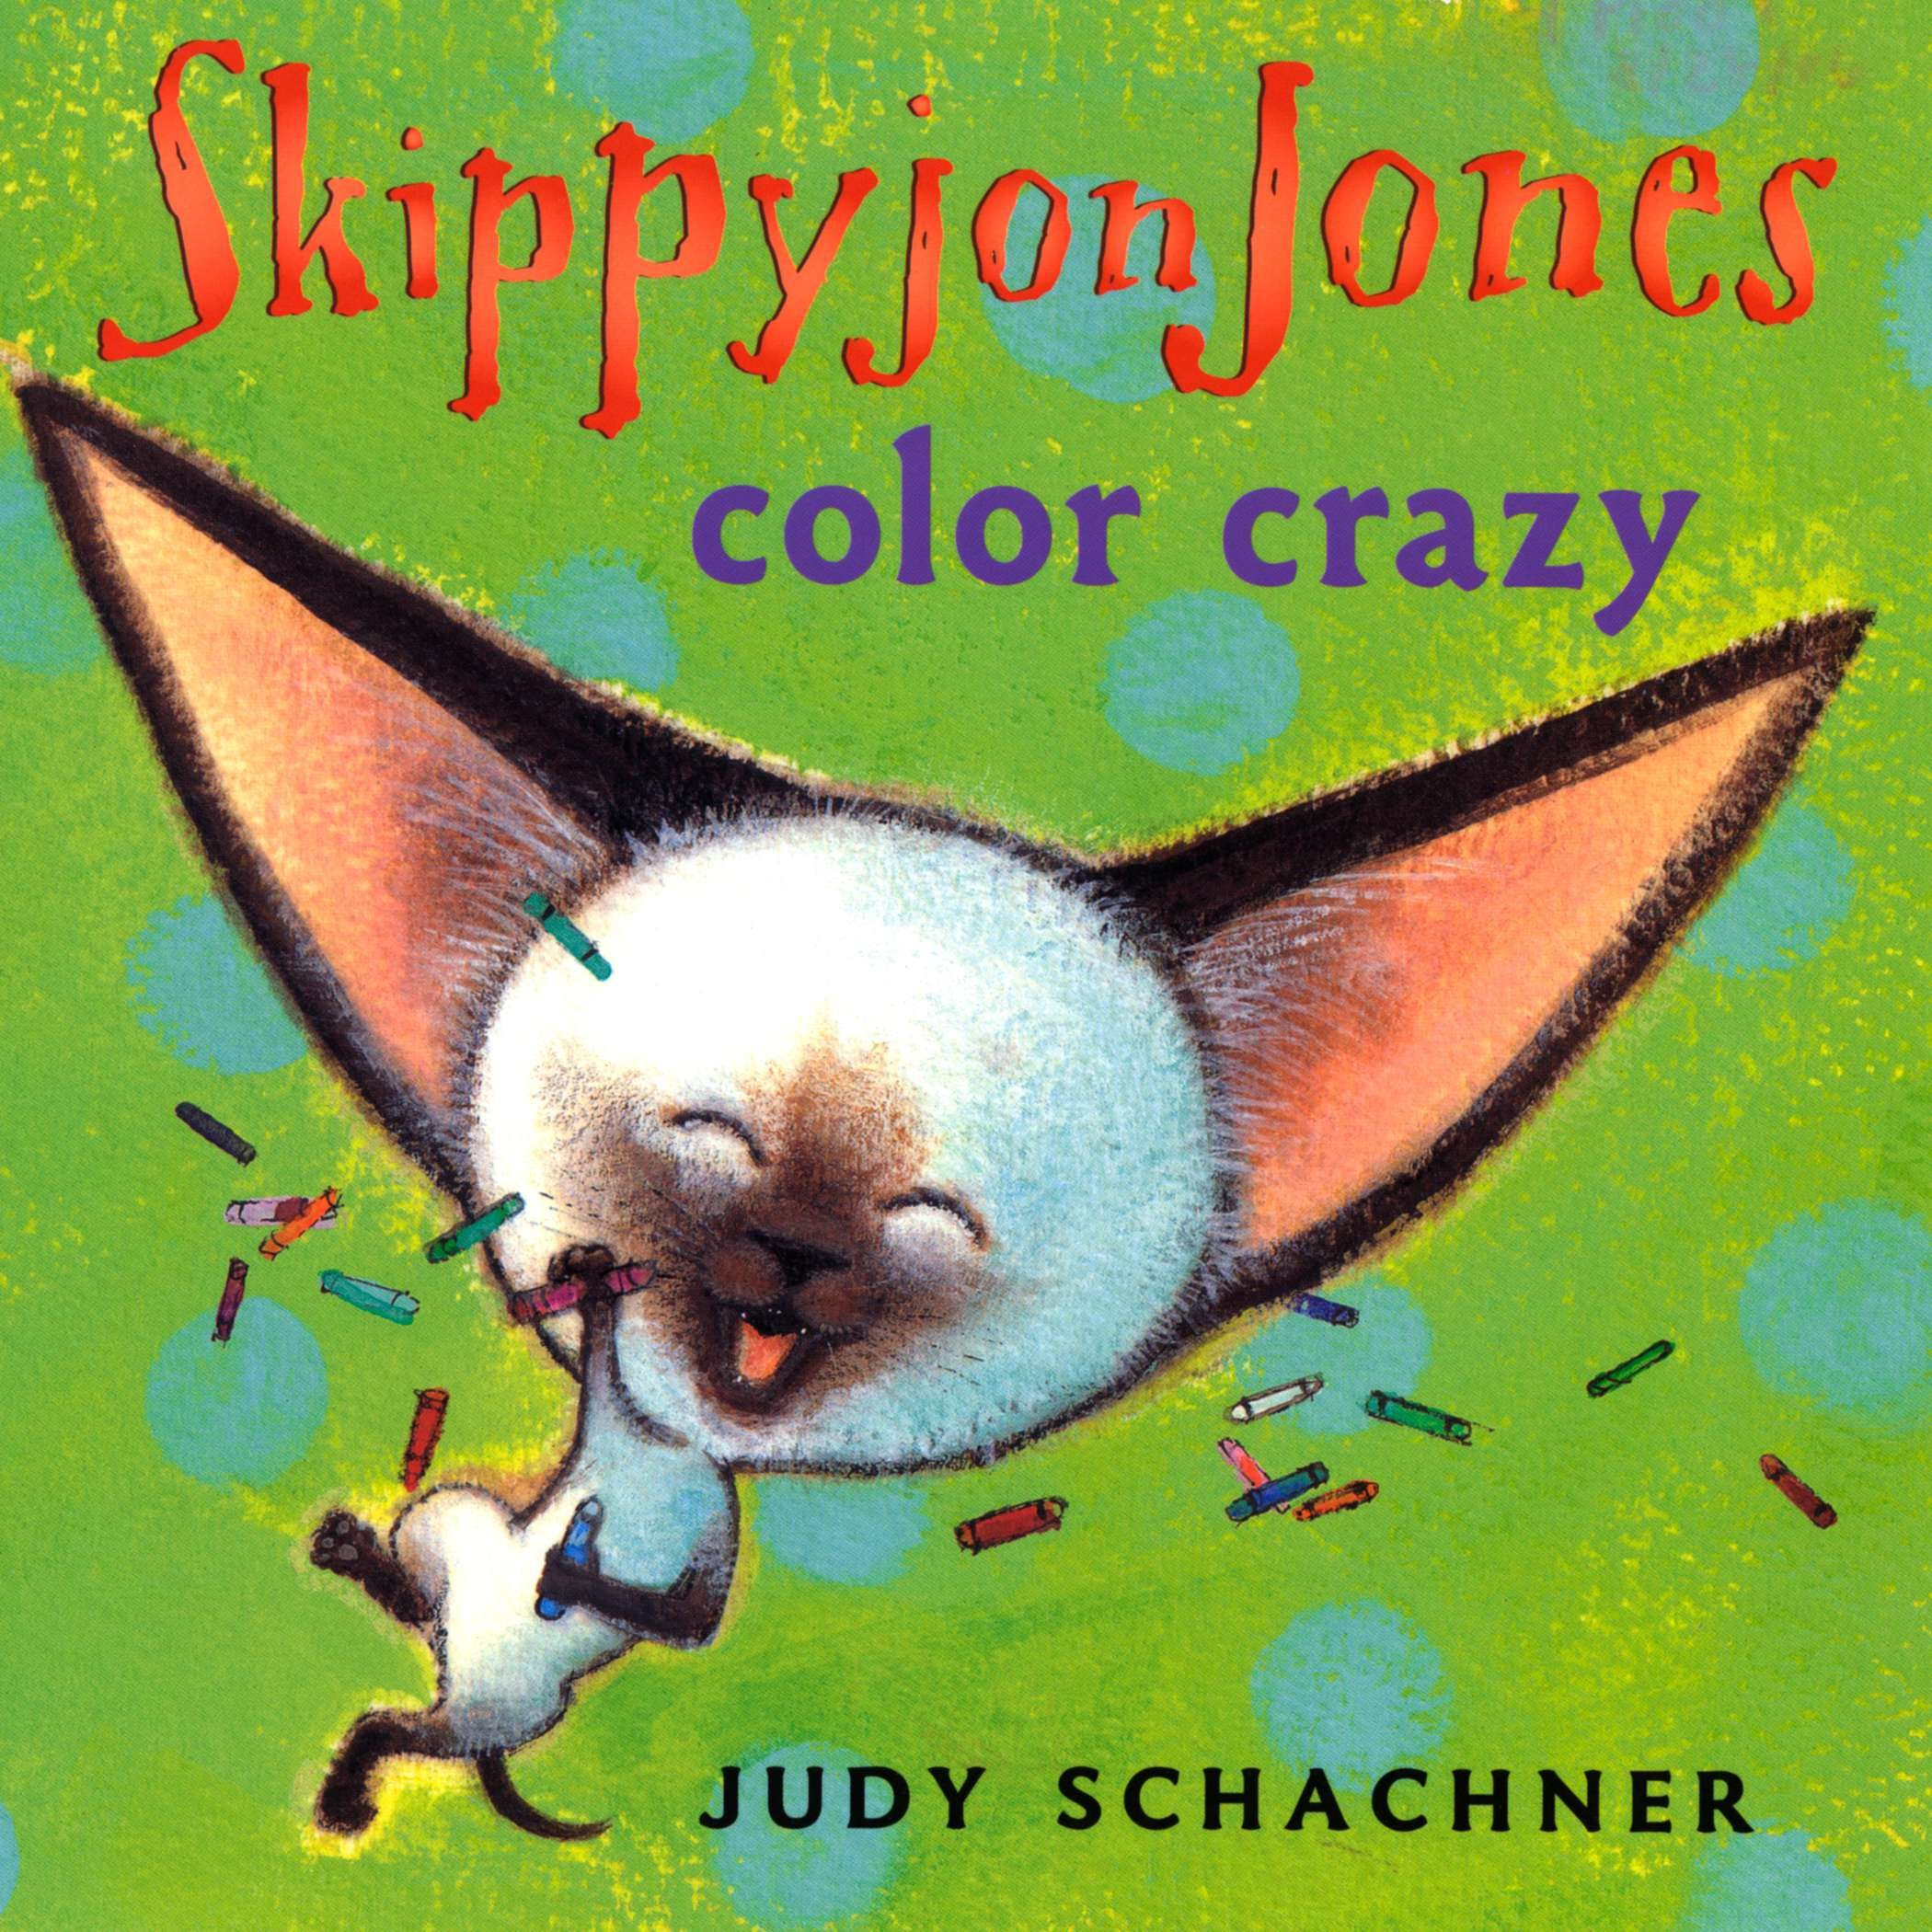 Skippyjon Jones Color Crazy (Board Book)